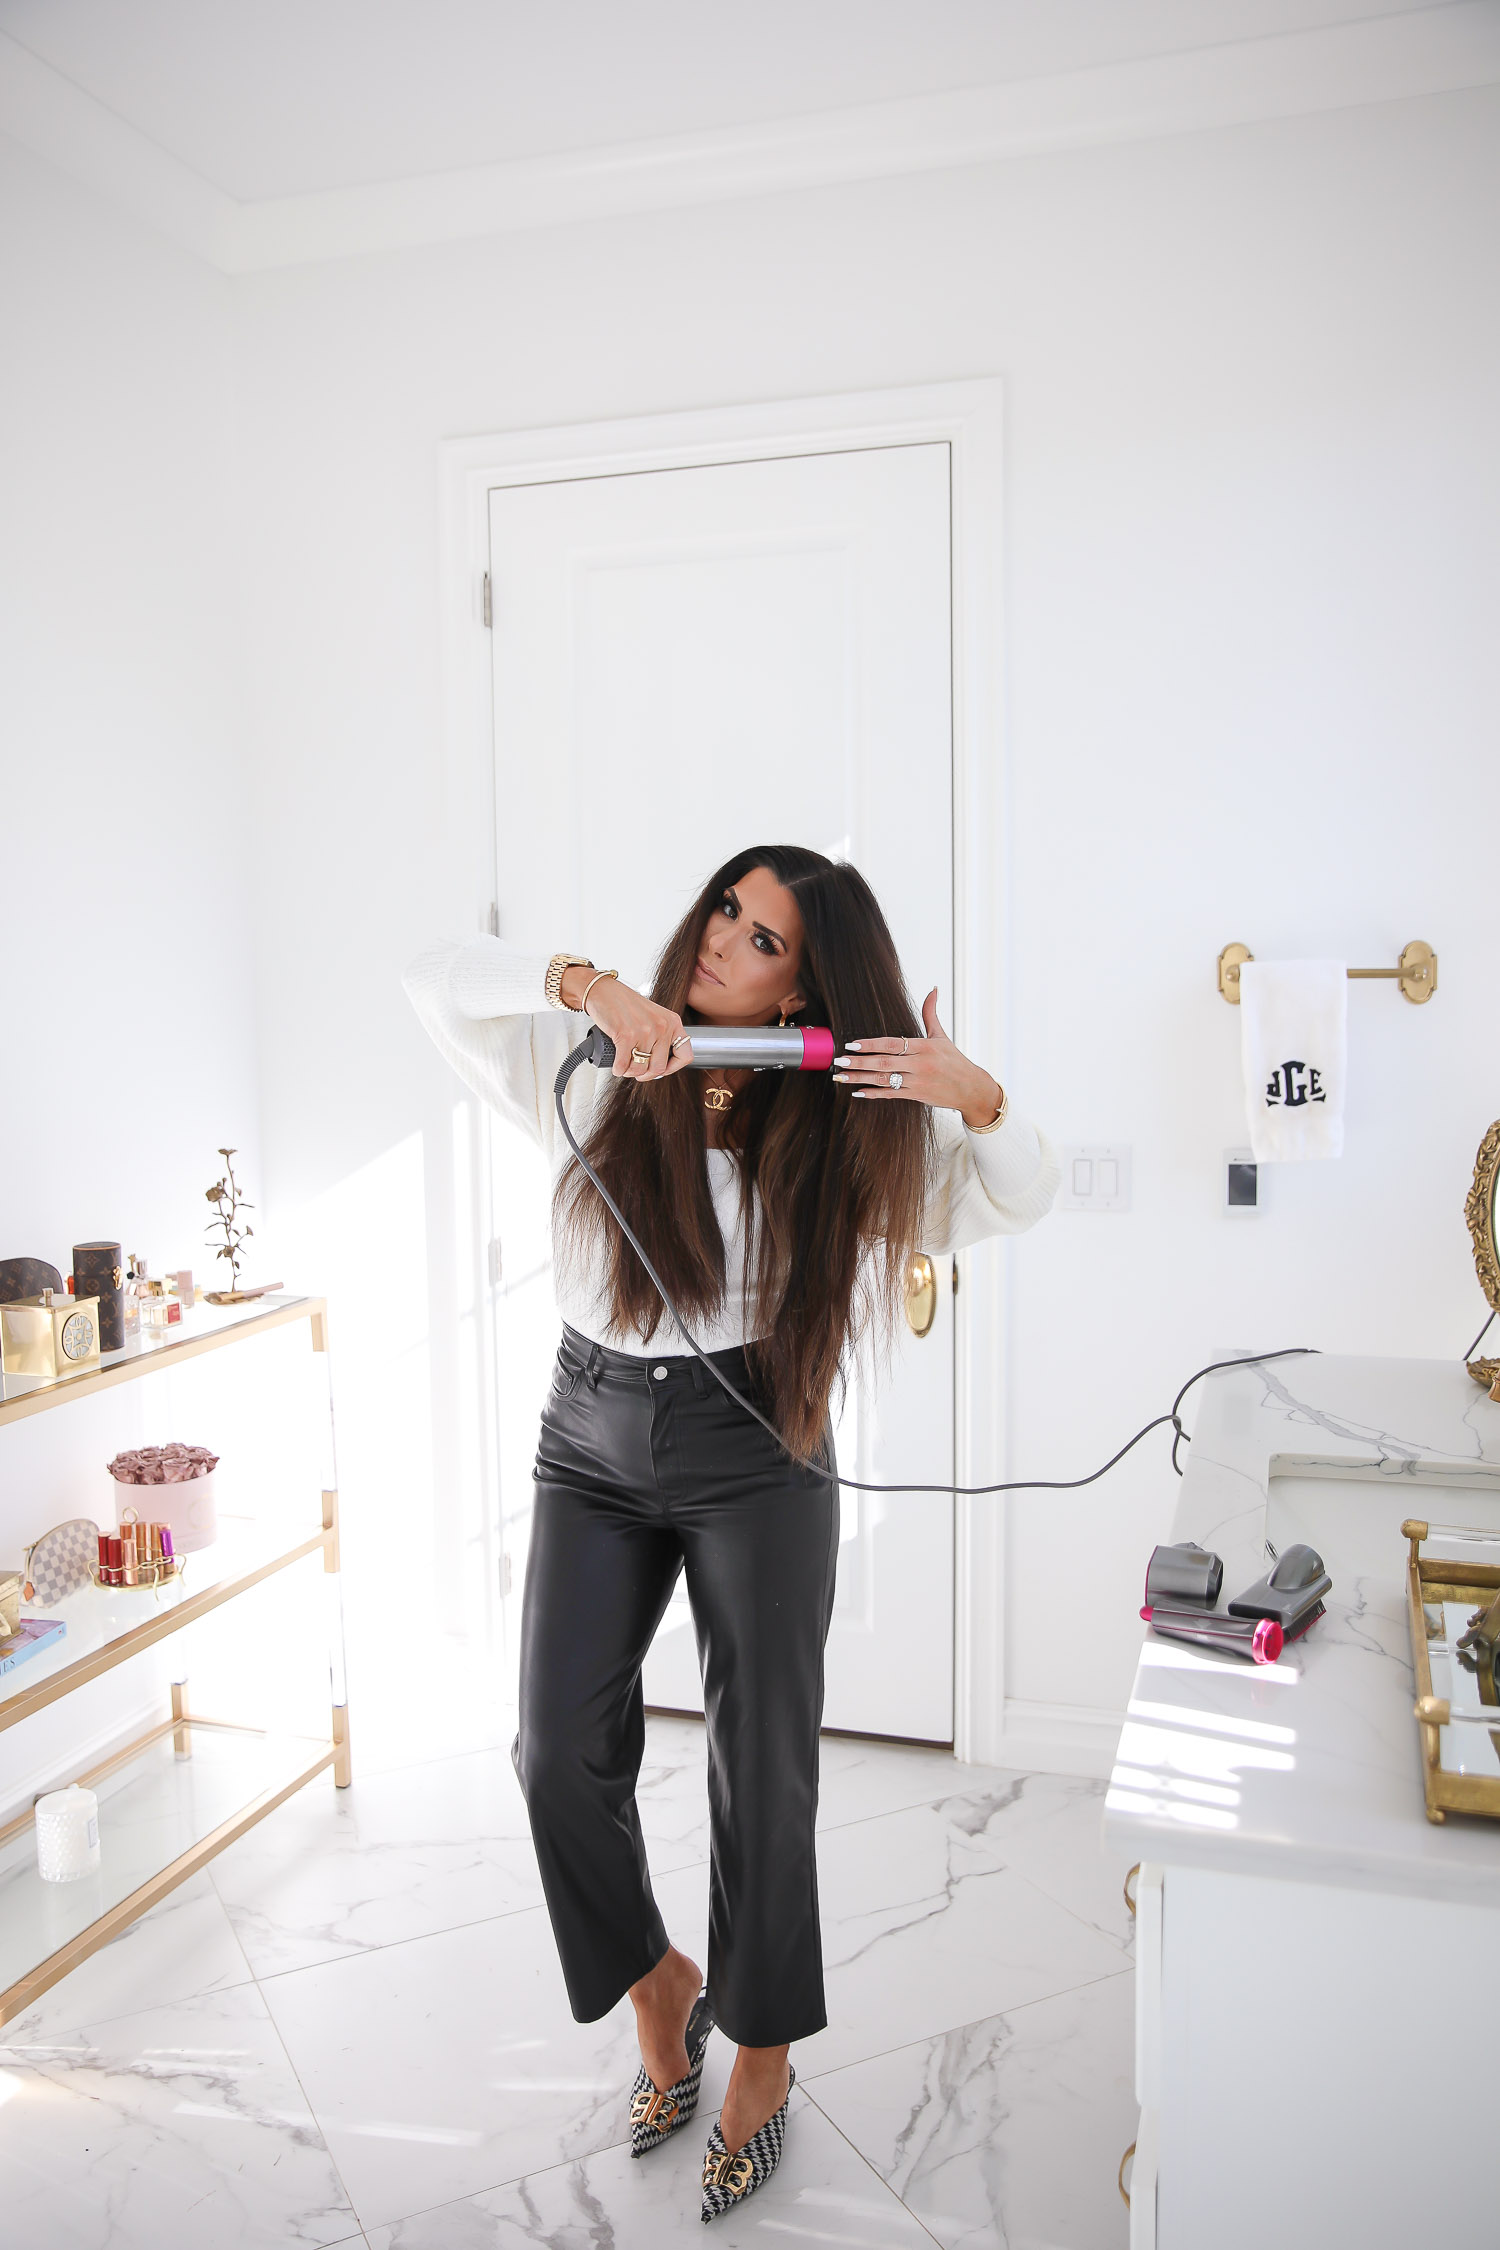 dyson airwrap review tutorial, how to curl hair with dyson air wrap, emily gemma_-4 |Dyson Air Wrap by popular US beauty blog, The Sweetest Thing: image of Emily Gemma wearing a white sweater, black faux leather pants, and Balenciaga shoes and using a Dyson Air Wrap hair styler.